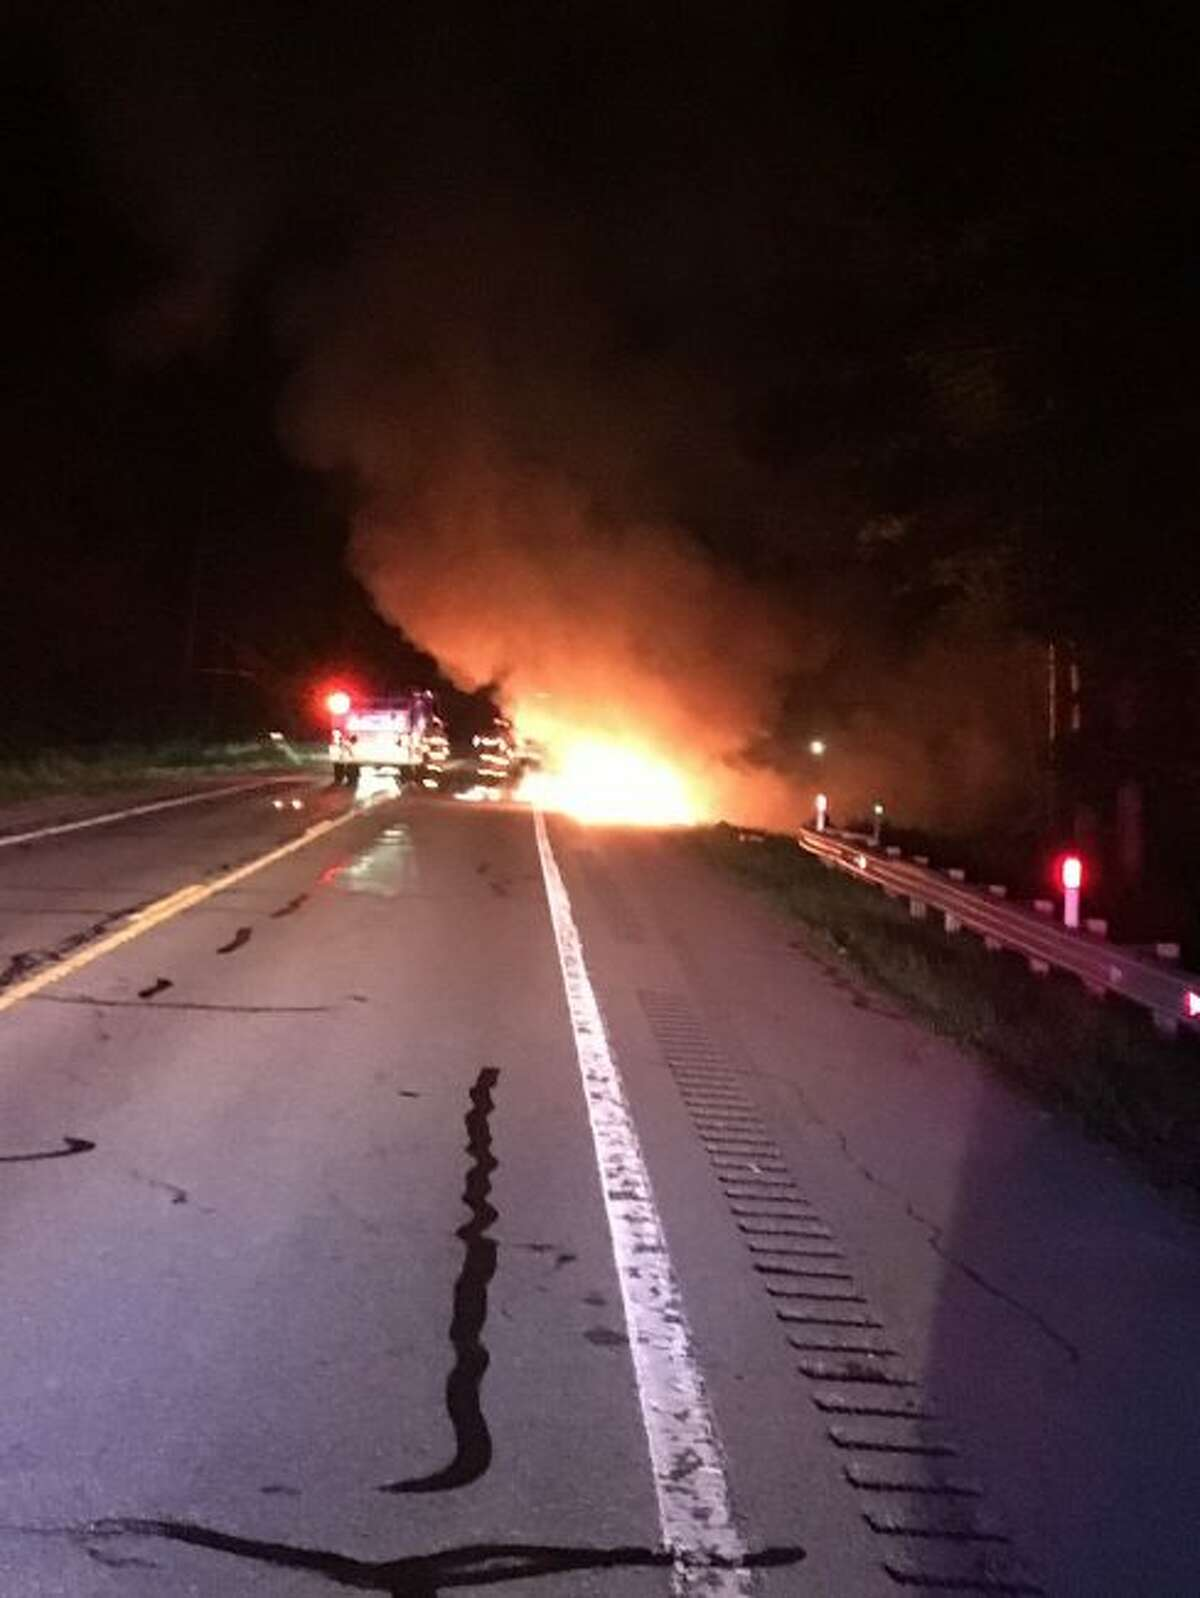 Michigan State Police troopers responded to a car/deer crash around 11:40 p.m. on Thursday on M-115 and Viaduct Road in Cleon Township that turned into a car fire. The car was occupied by a family on vacation from Ohio. Everyone got out without injuries and they were able to save most of their belongings, according to MSP. (Courtesy photo)